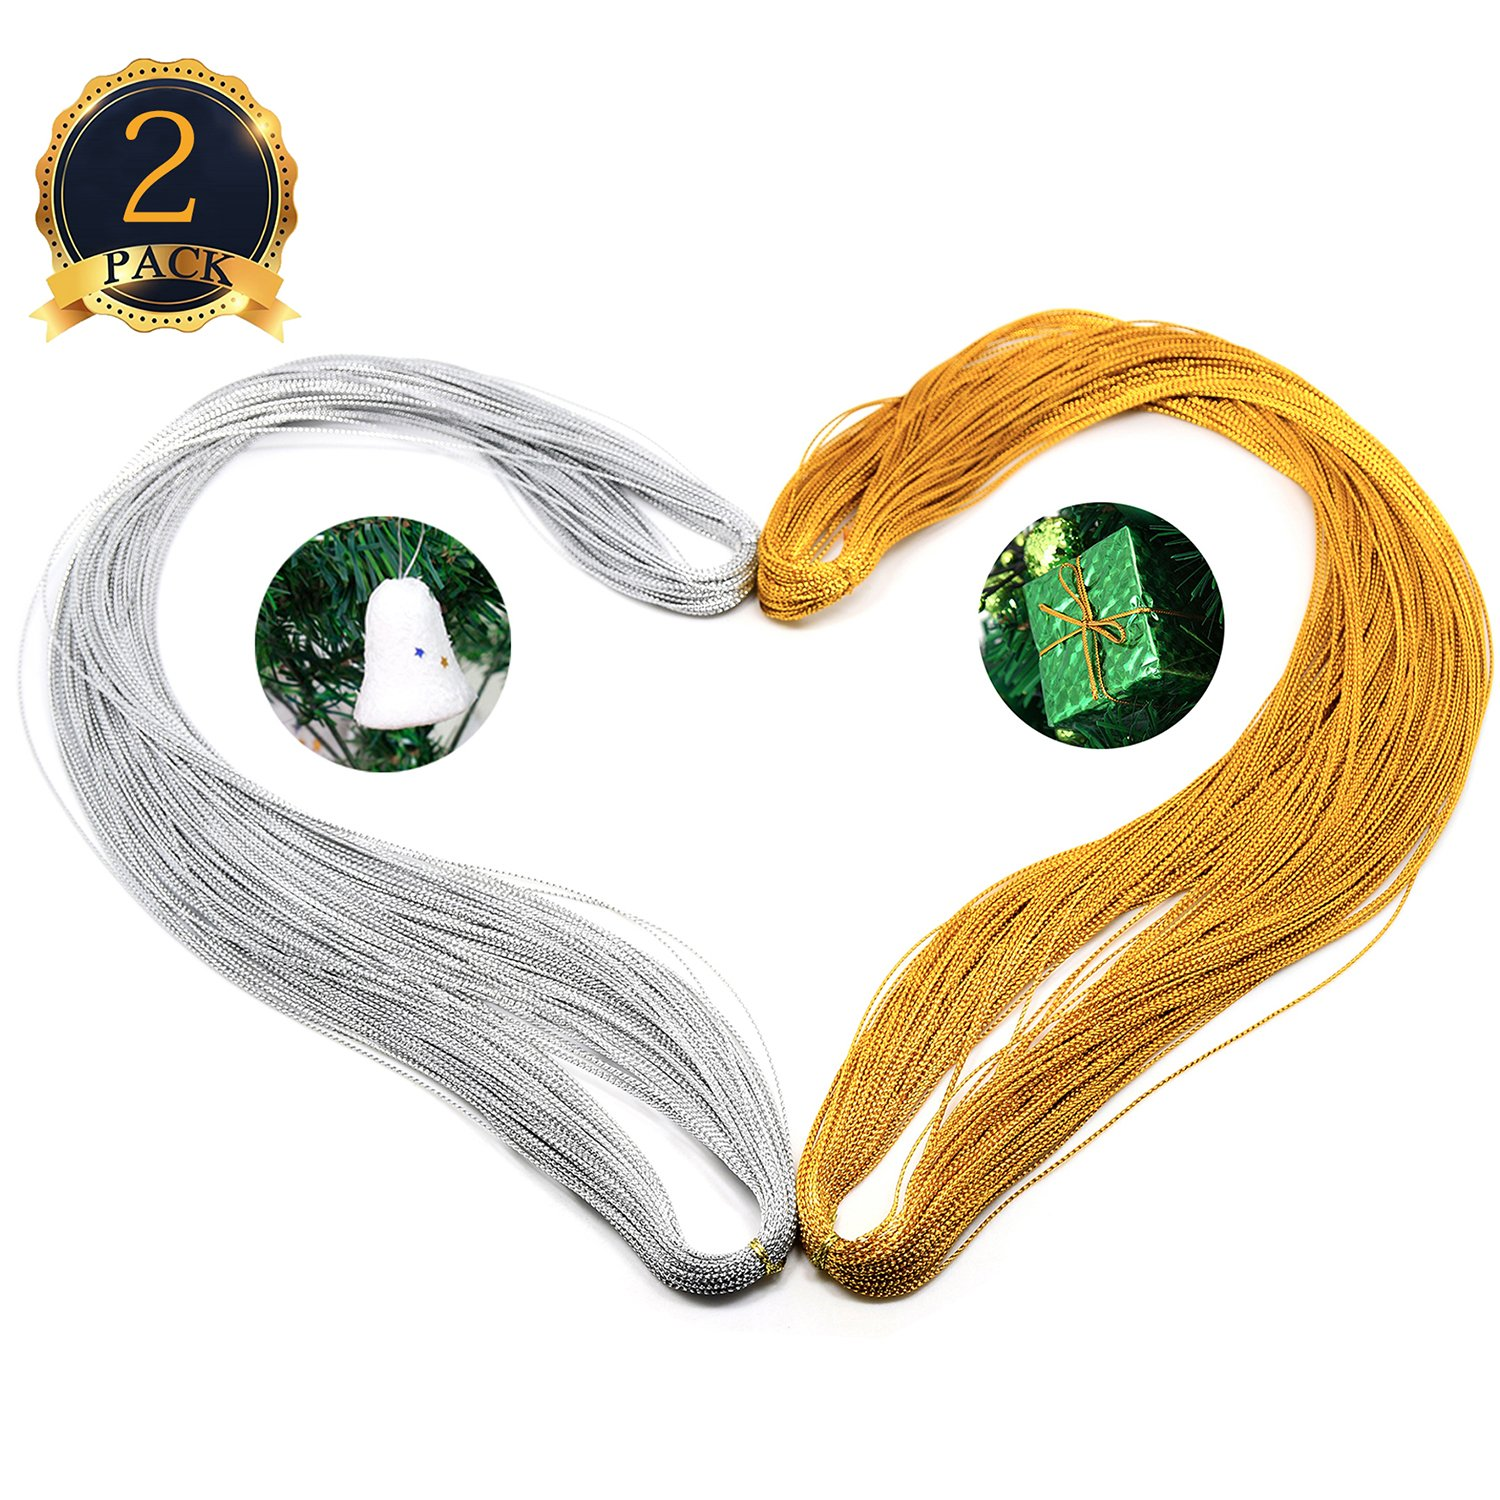 Metallic Cord Jewelry Thread Craft String Tag String Lift Cord for Jewelry and Craft Making Hanging Floss For Gift Wrapping Packaging ,2 Packx328 Feet, Golden and Silver COMEMAKA